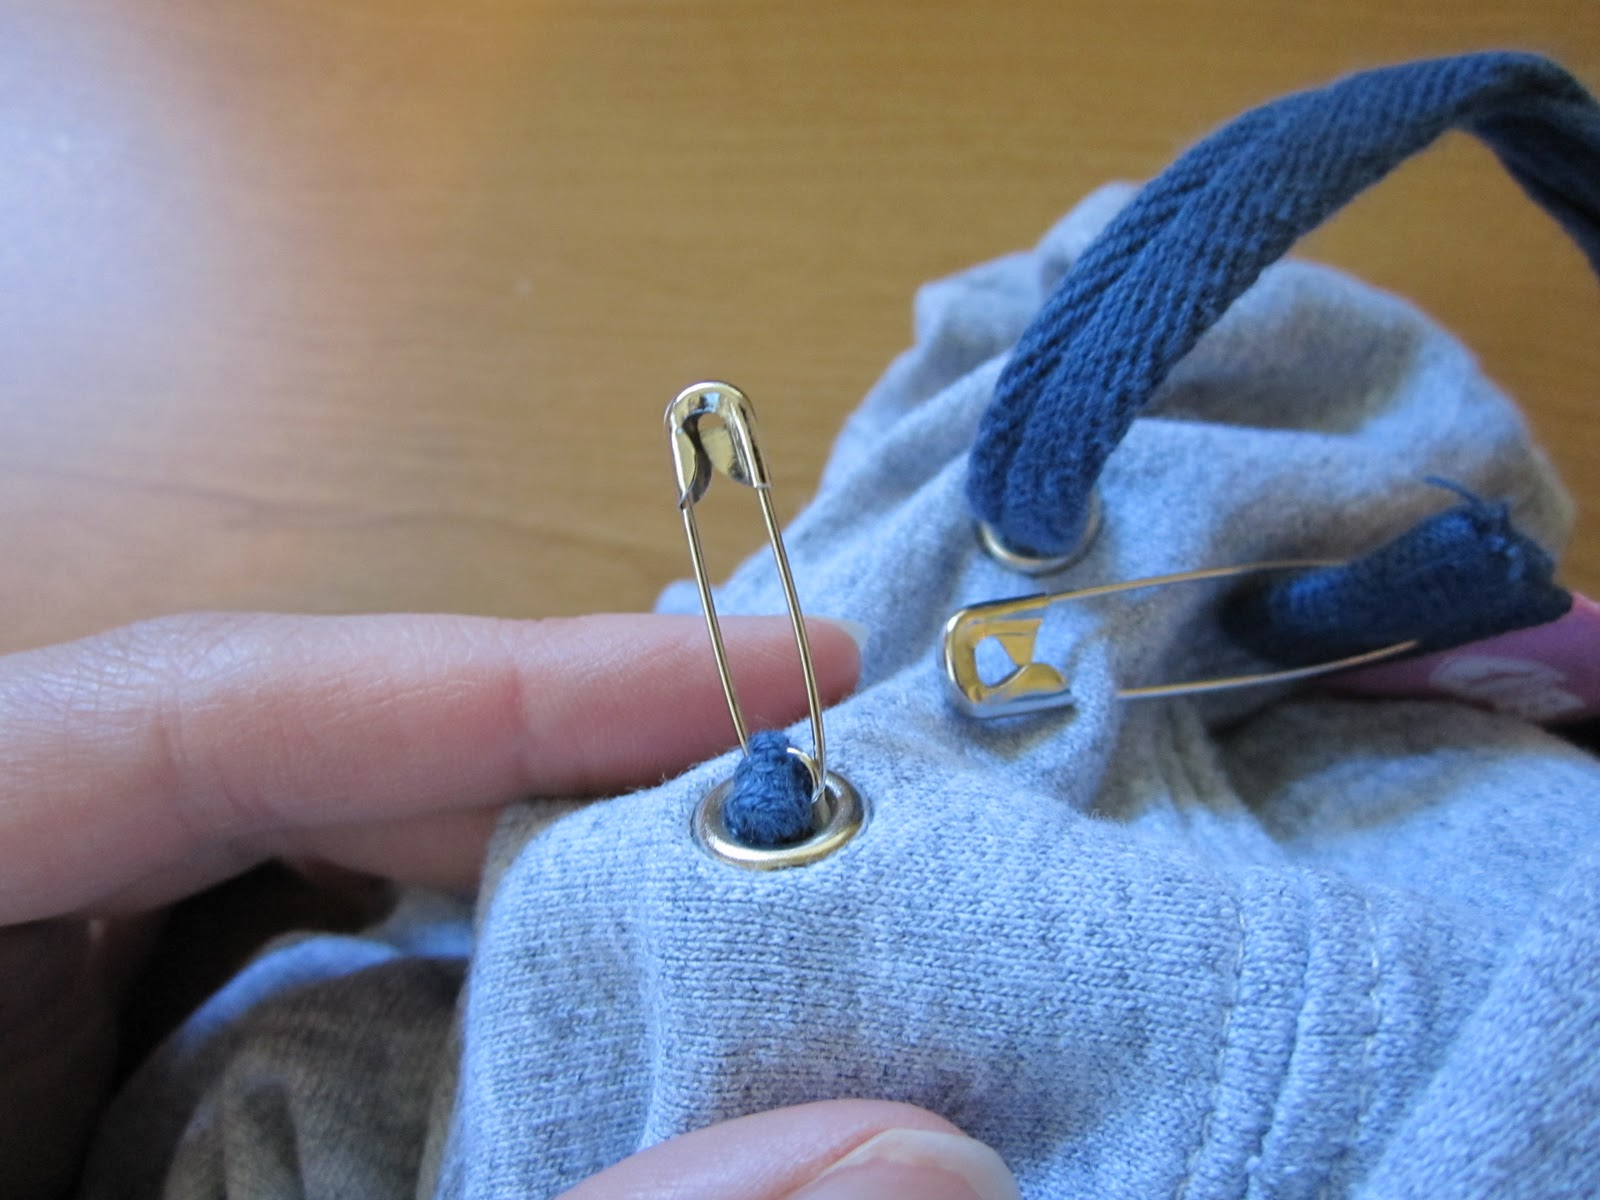 20 Ingenious Tricks For Your Clothes That Will Save You A